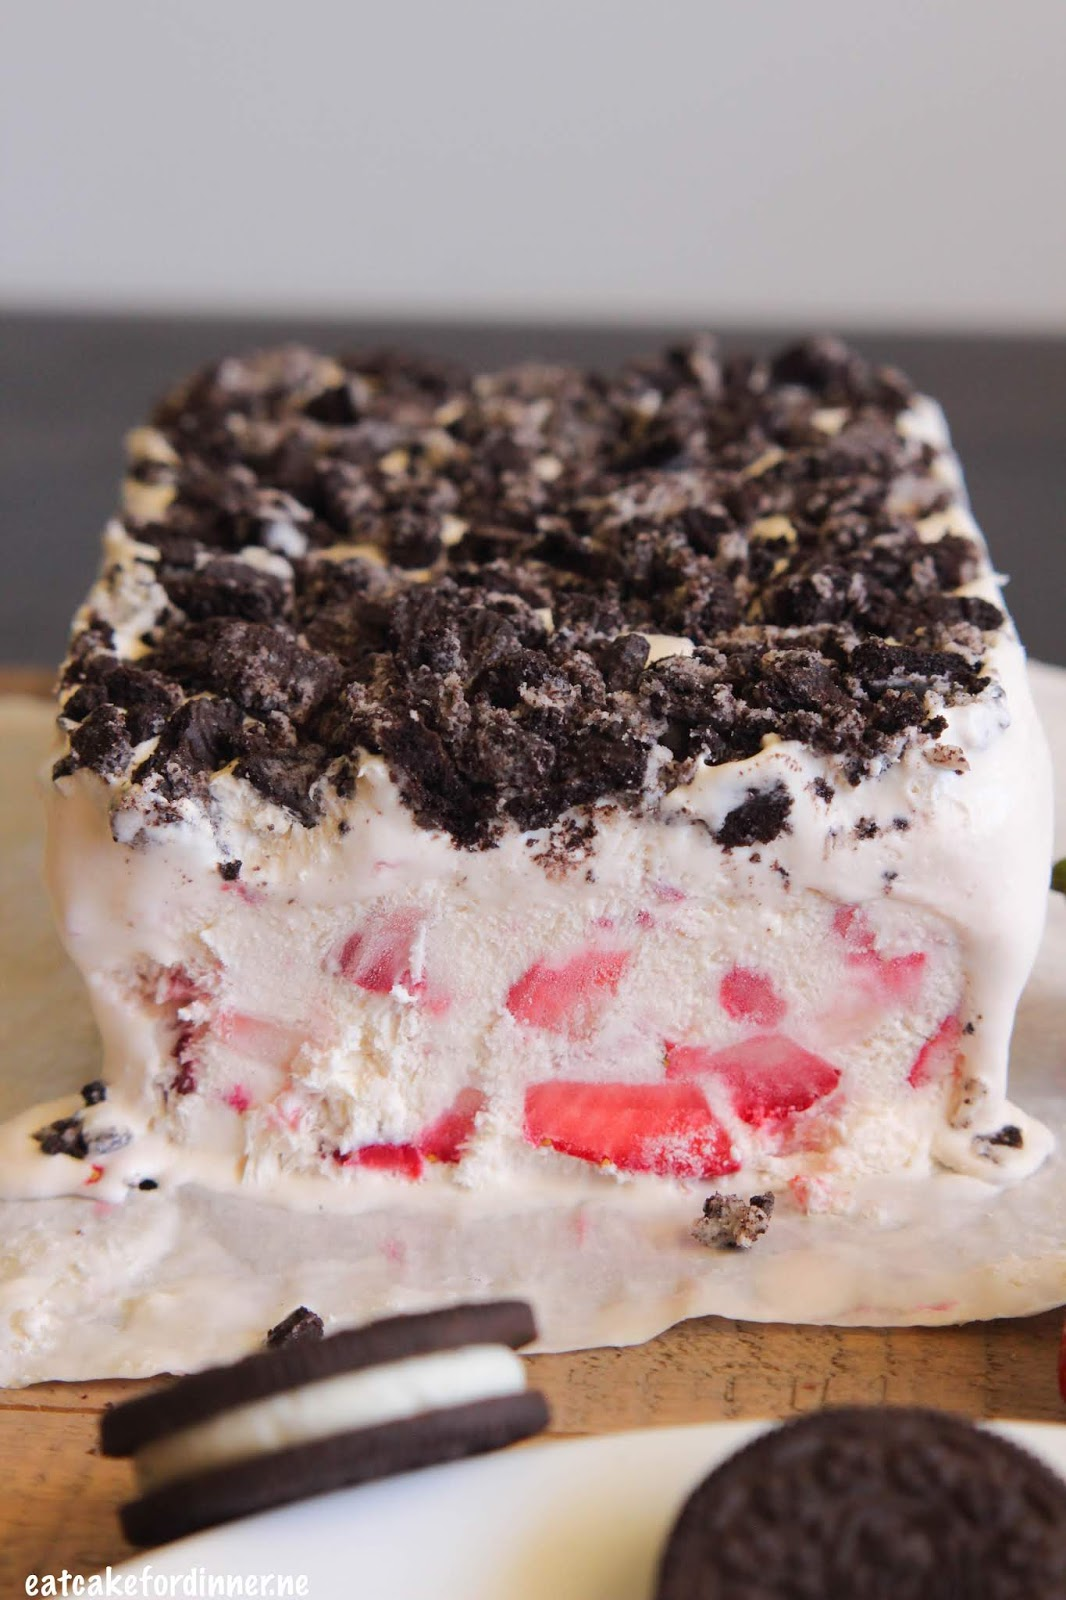 Eat Cake For Dinner Strawberry Oreo Frozen Fruit Dessert